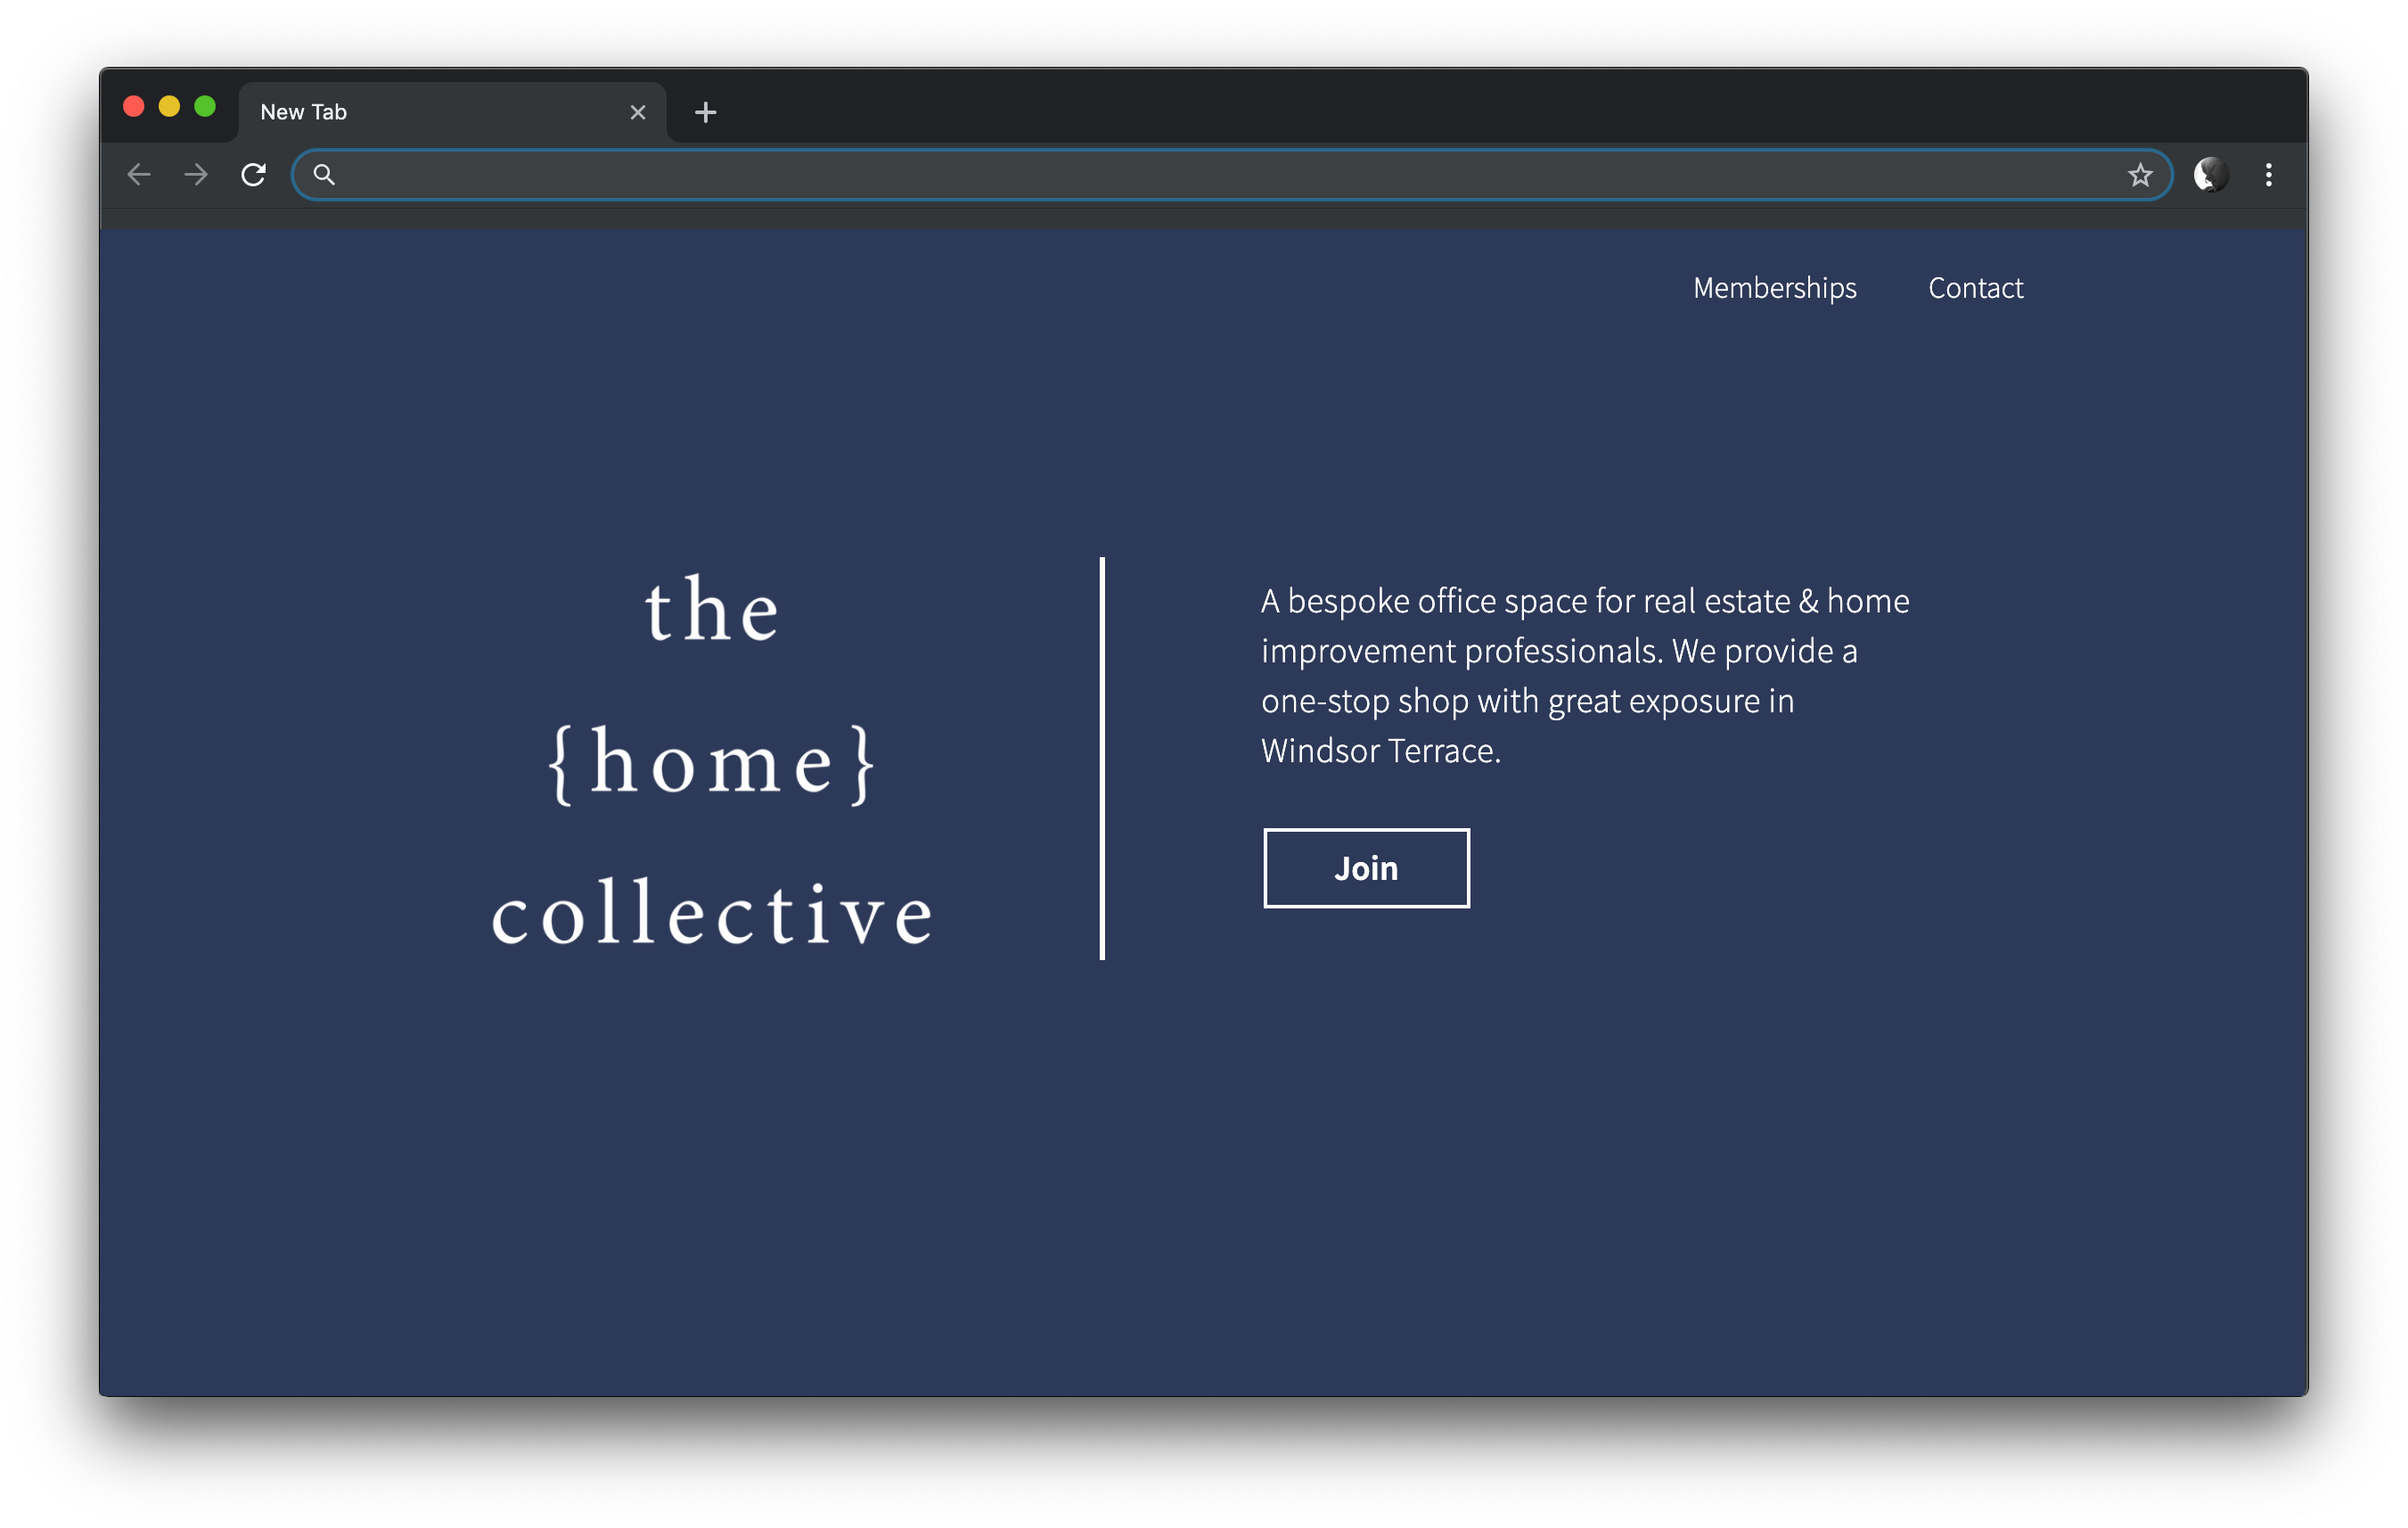 Web Design for Home Collective